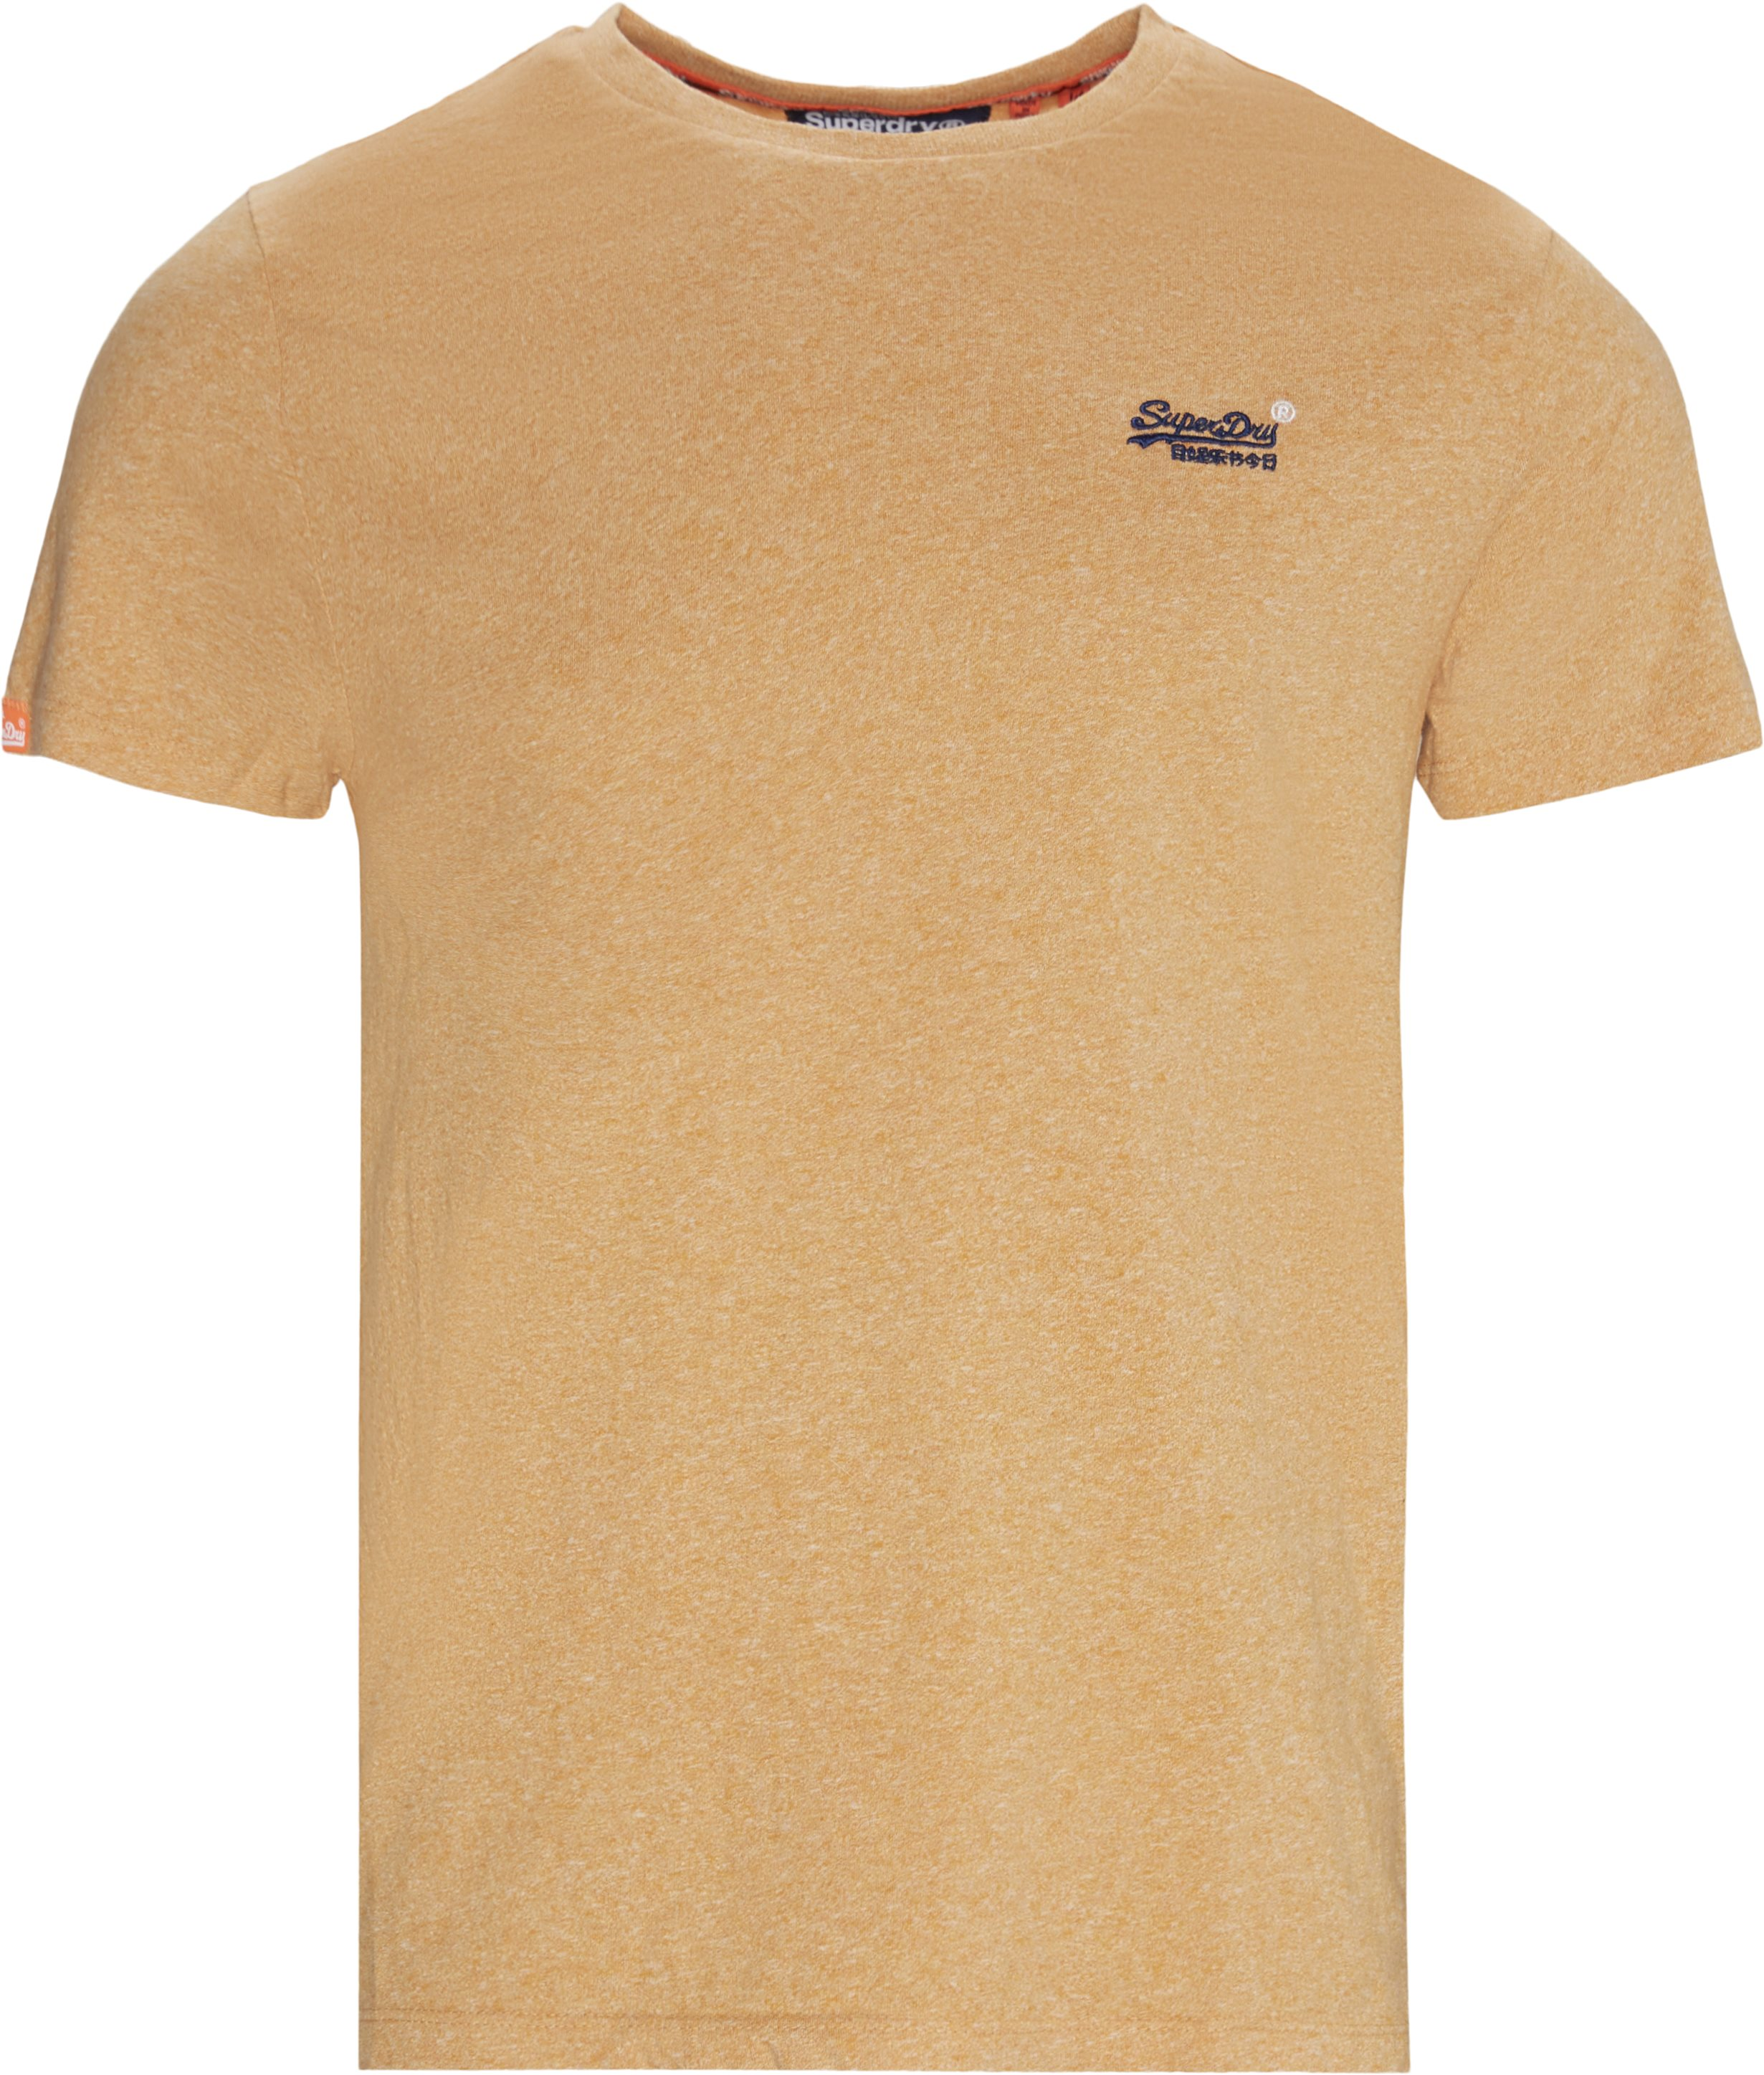 M101002 Tee - T-shirts - Regular - Orange